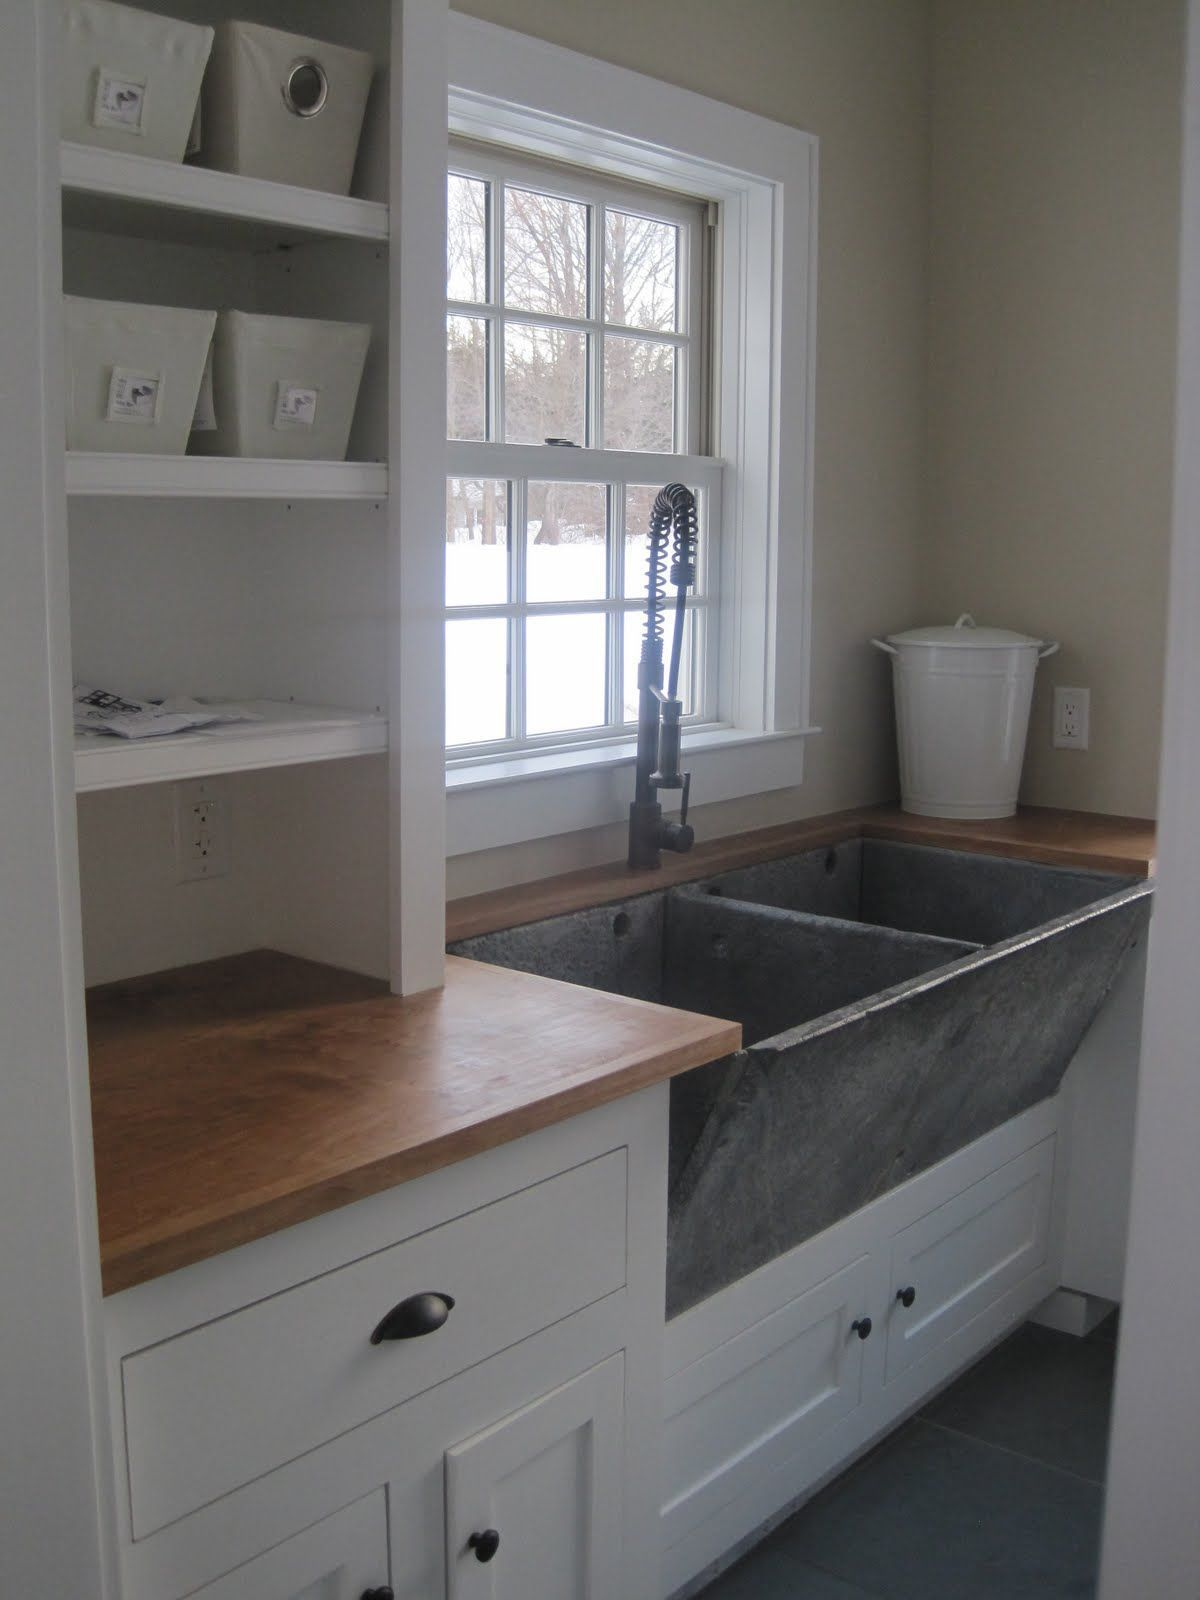 Basement Utility Room Laundry Room Remodel Laundry Room Sink